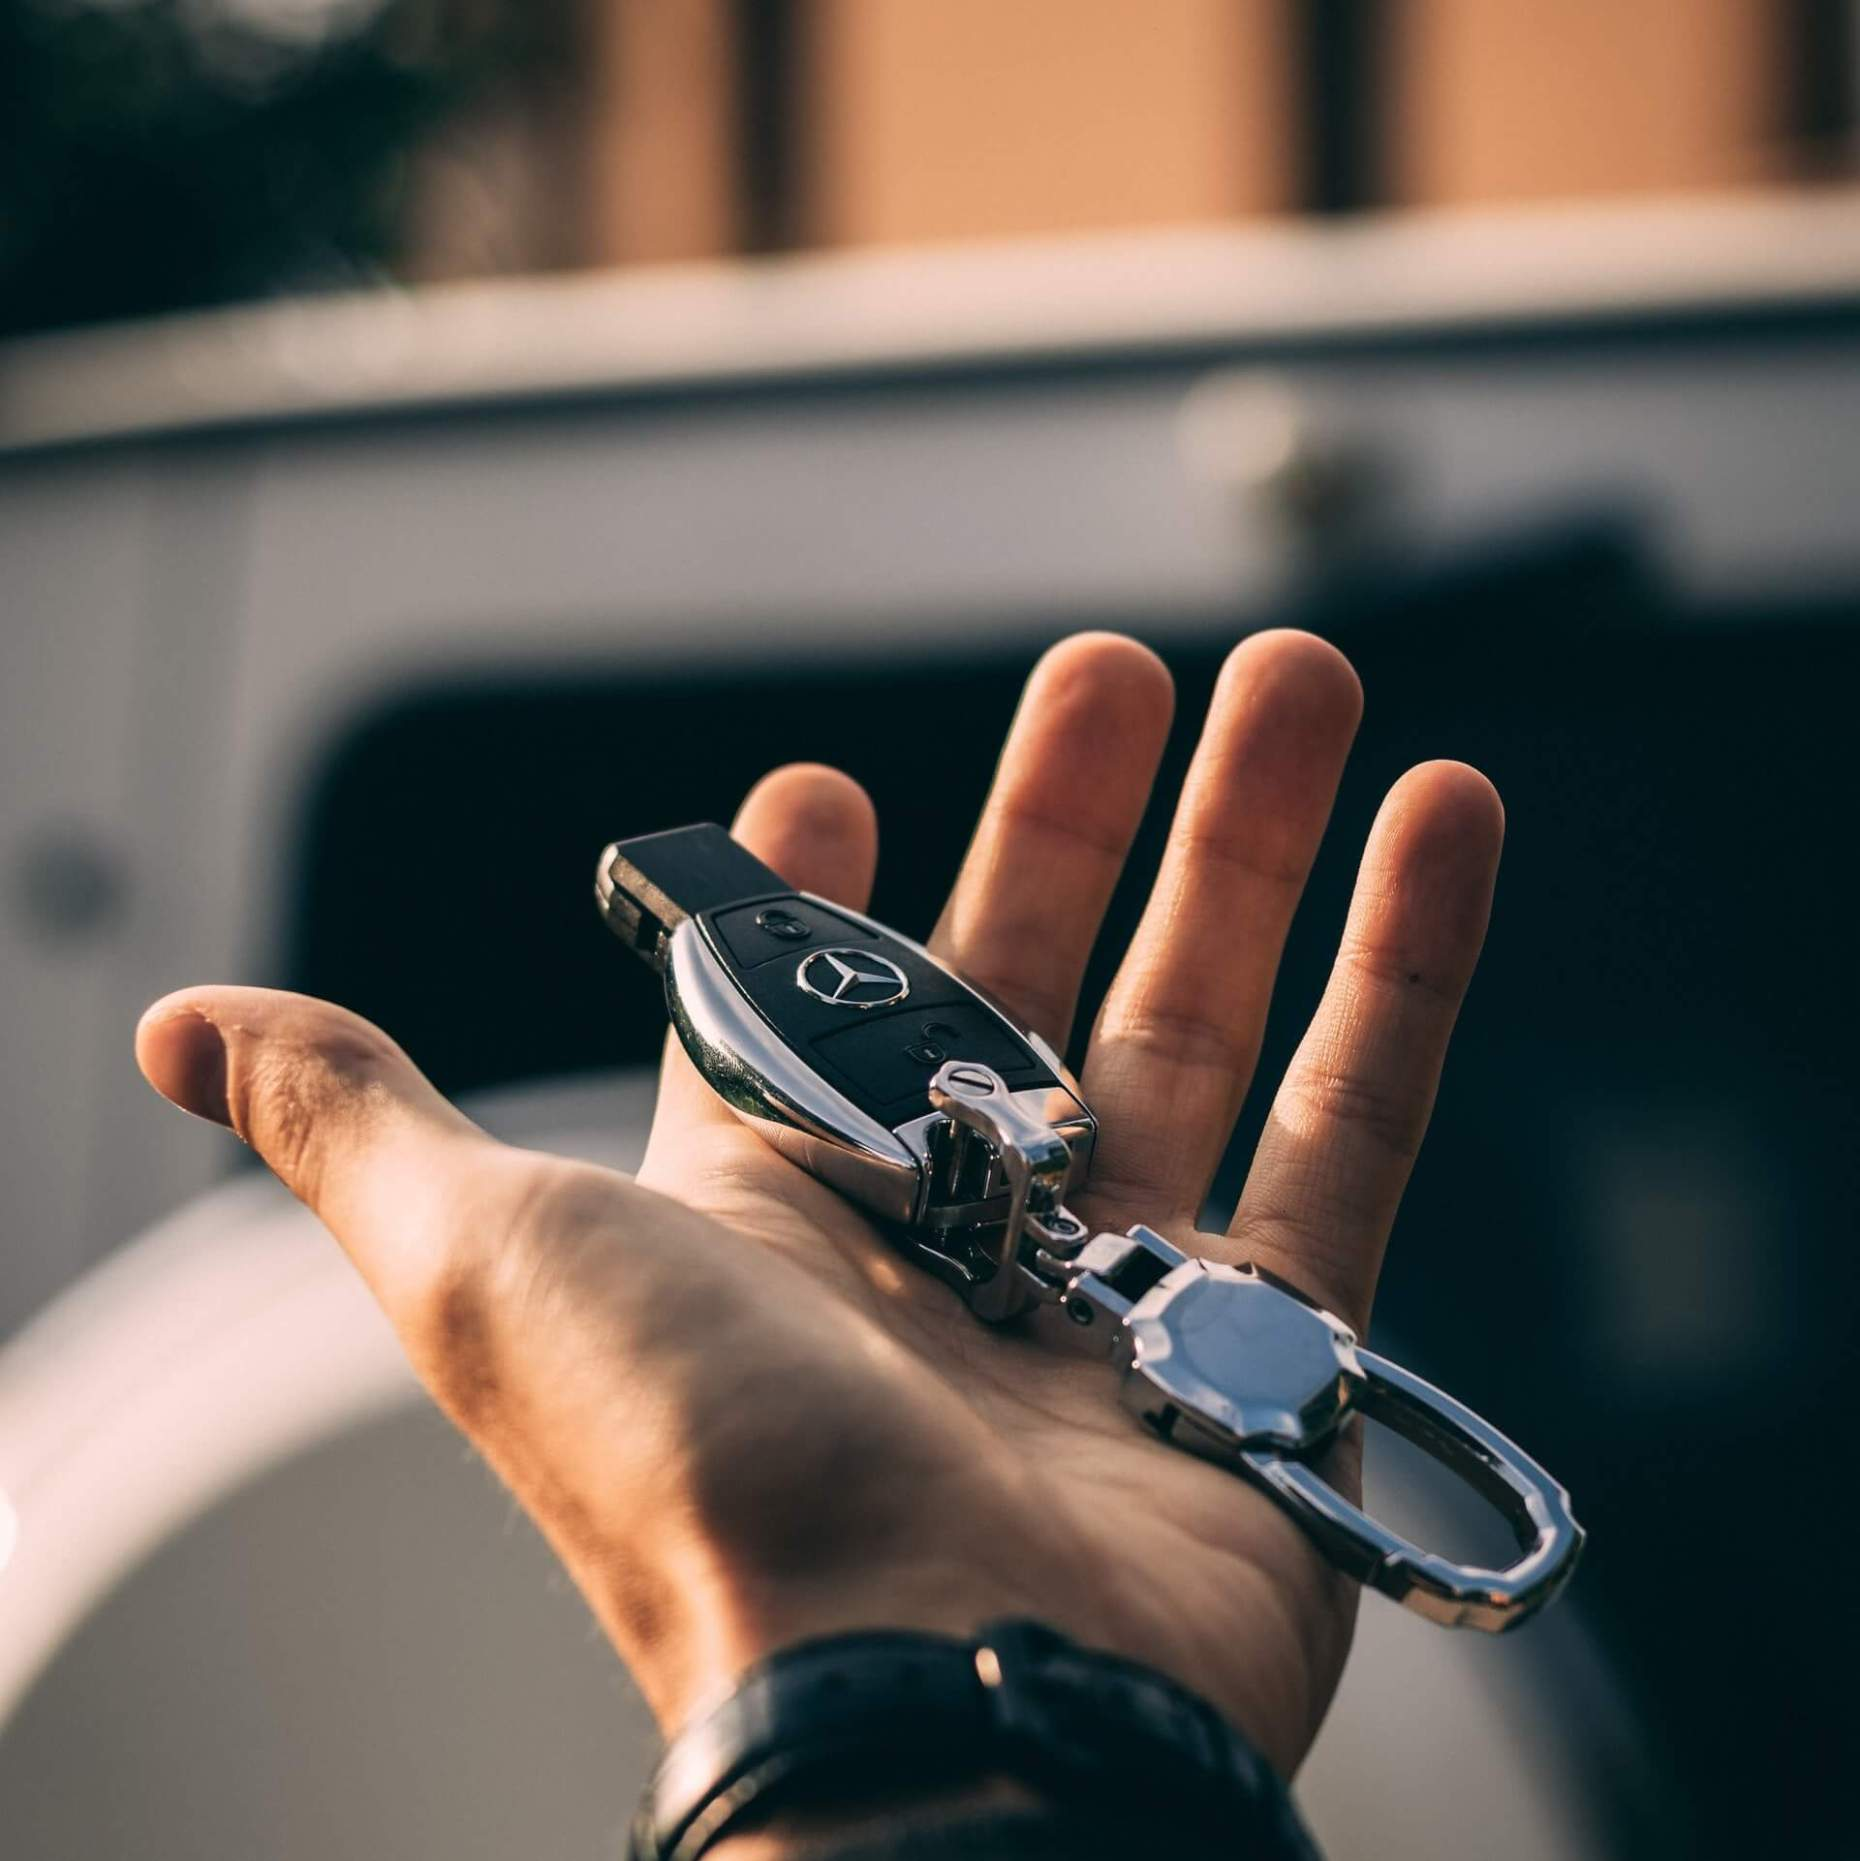 car keys to explain how we find our keys when were looking for them and optimism bias